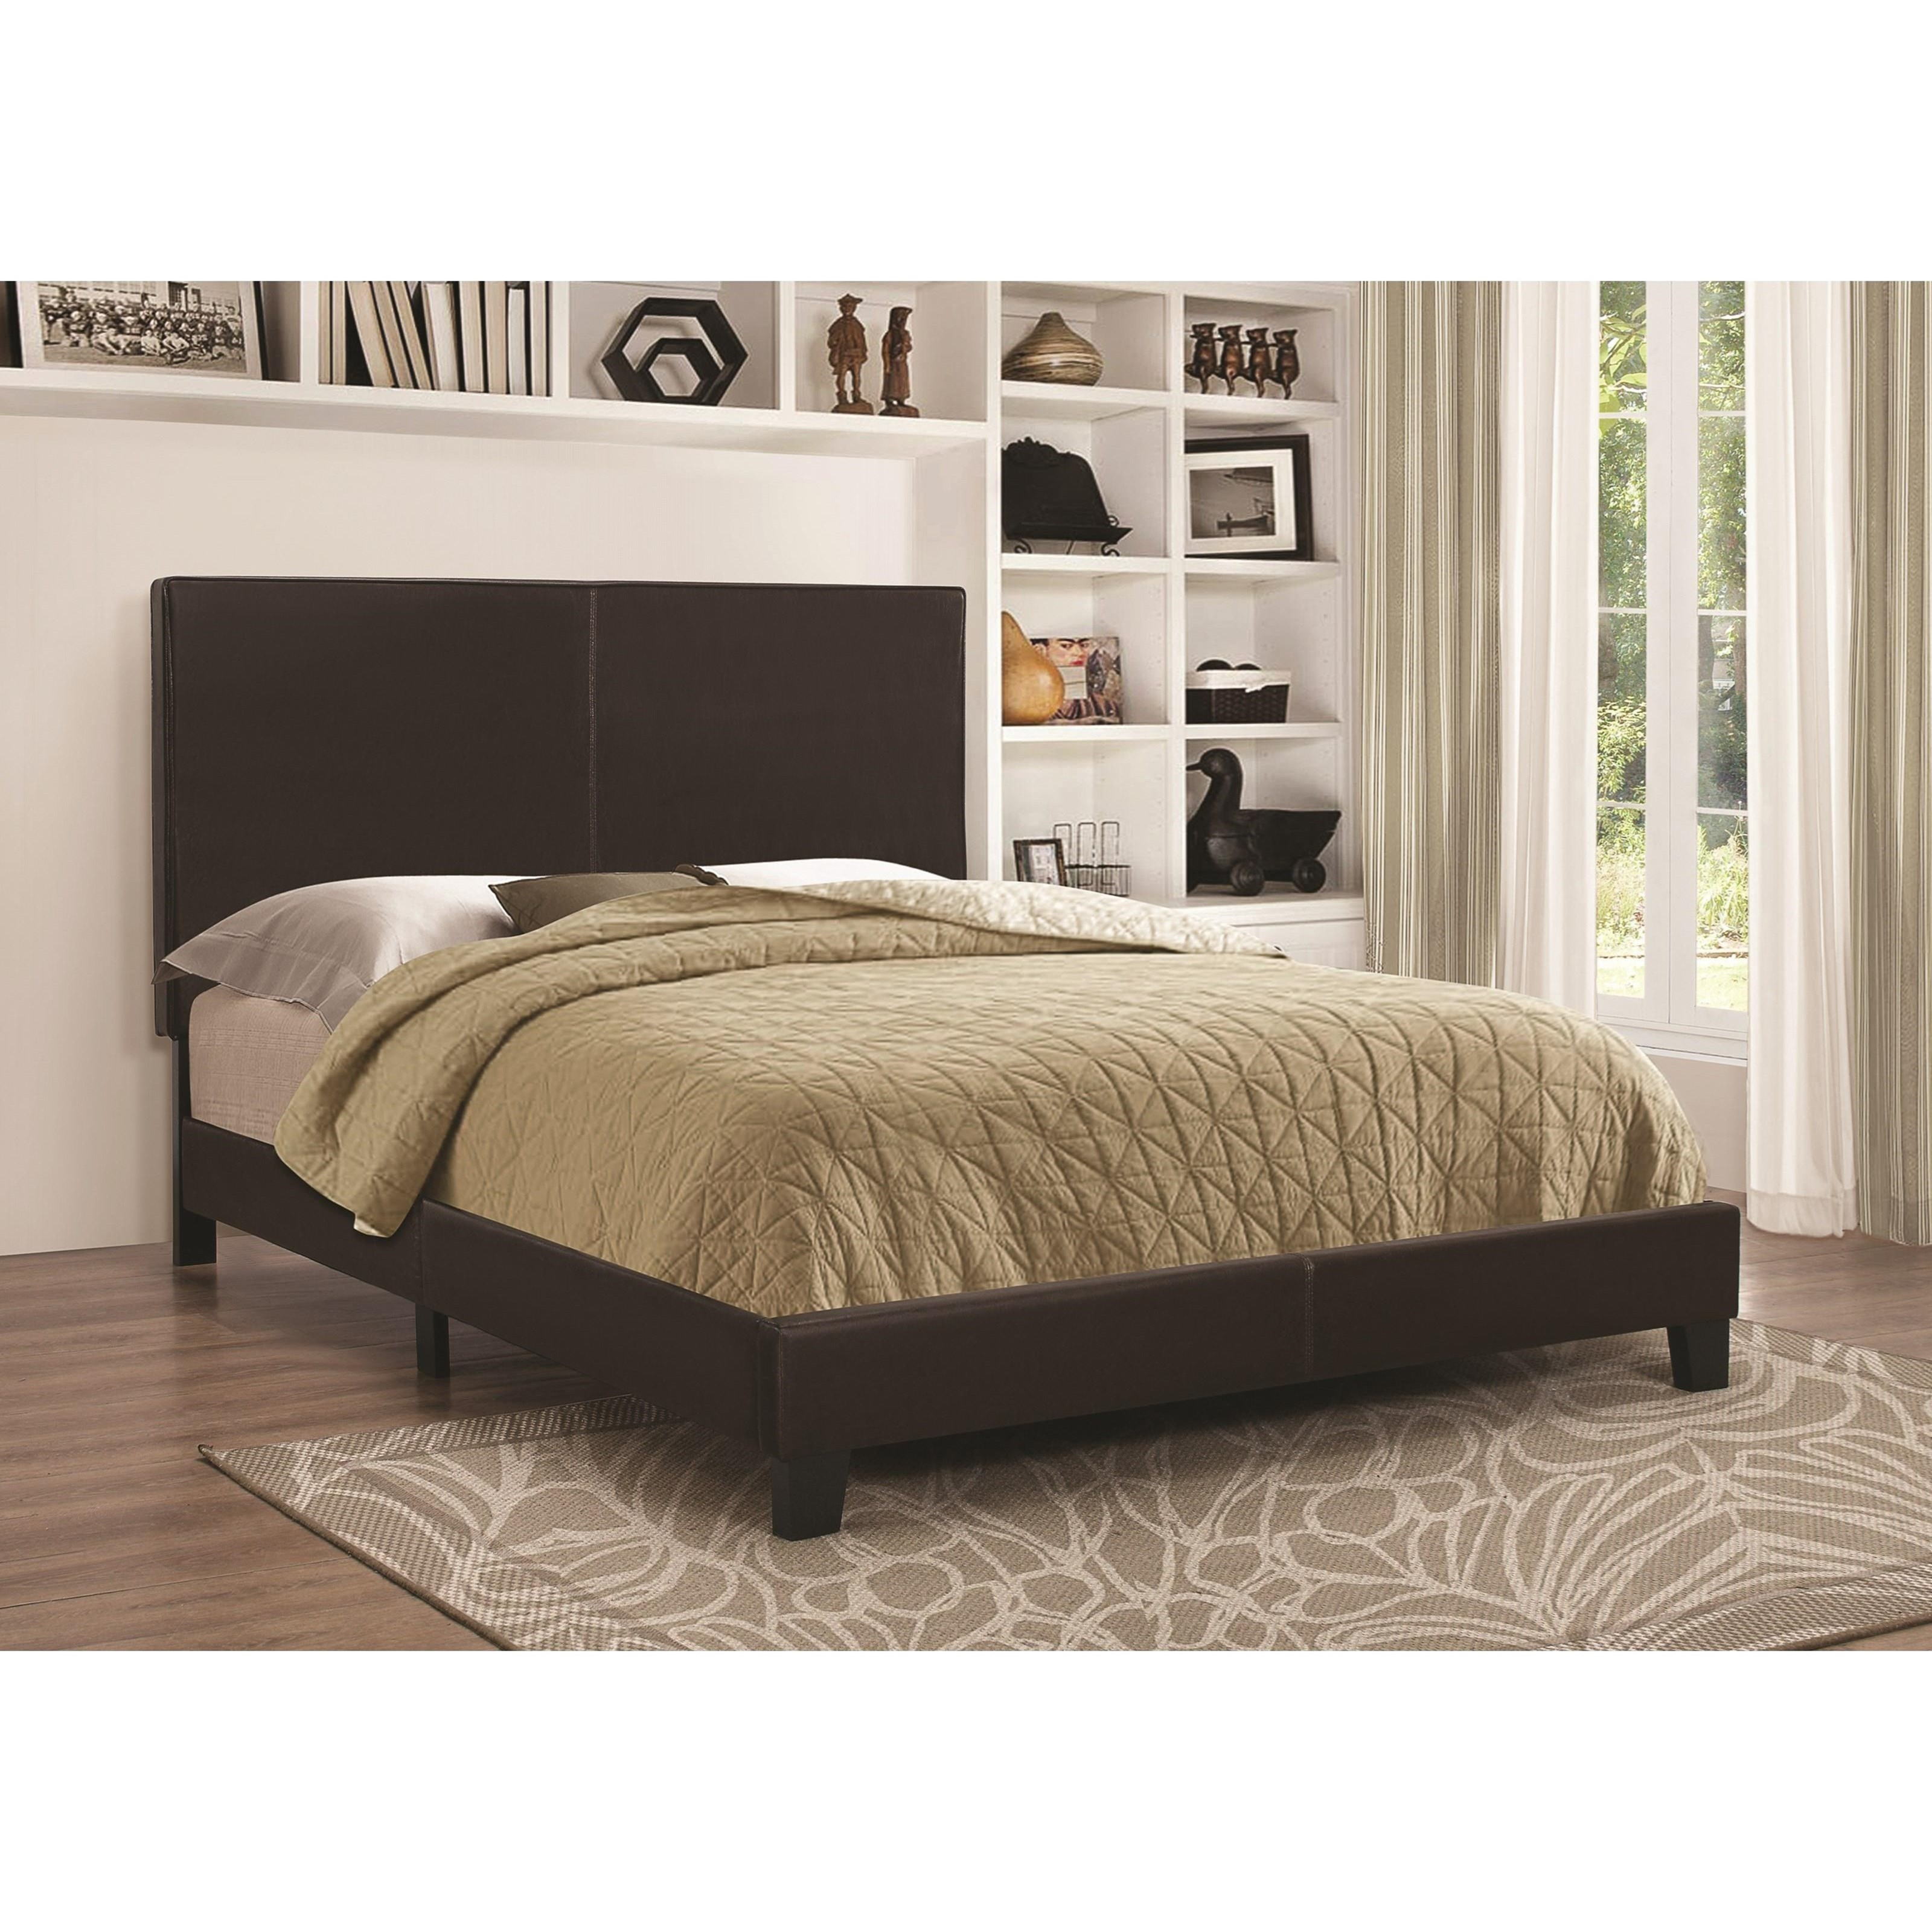 Upholstered Beds Queen Bed by Coaster at Northeast Factory Direct